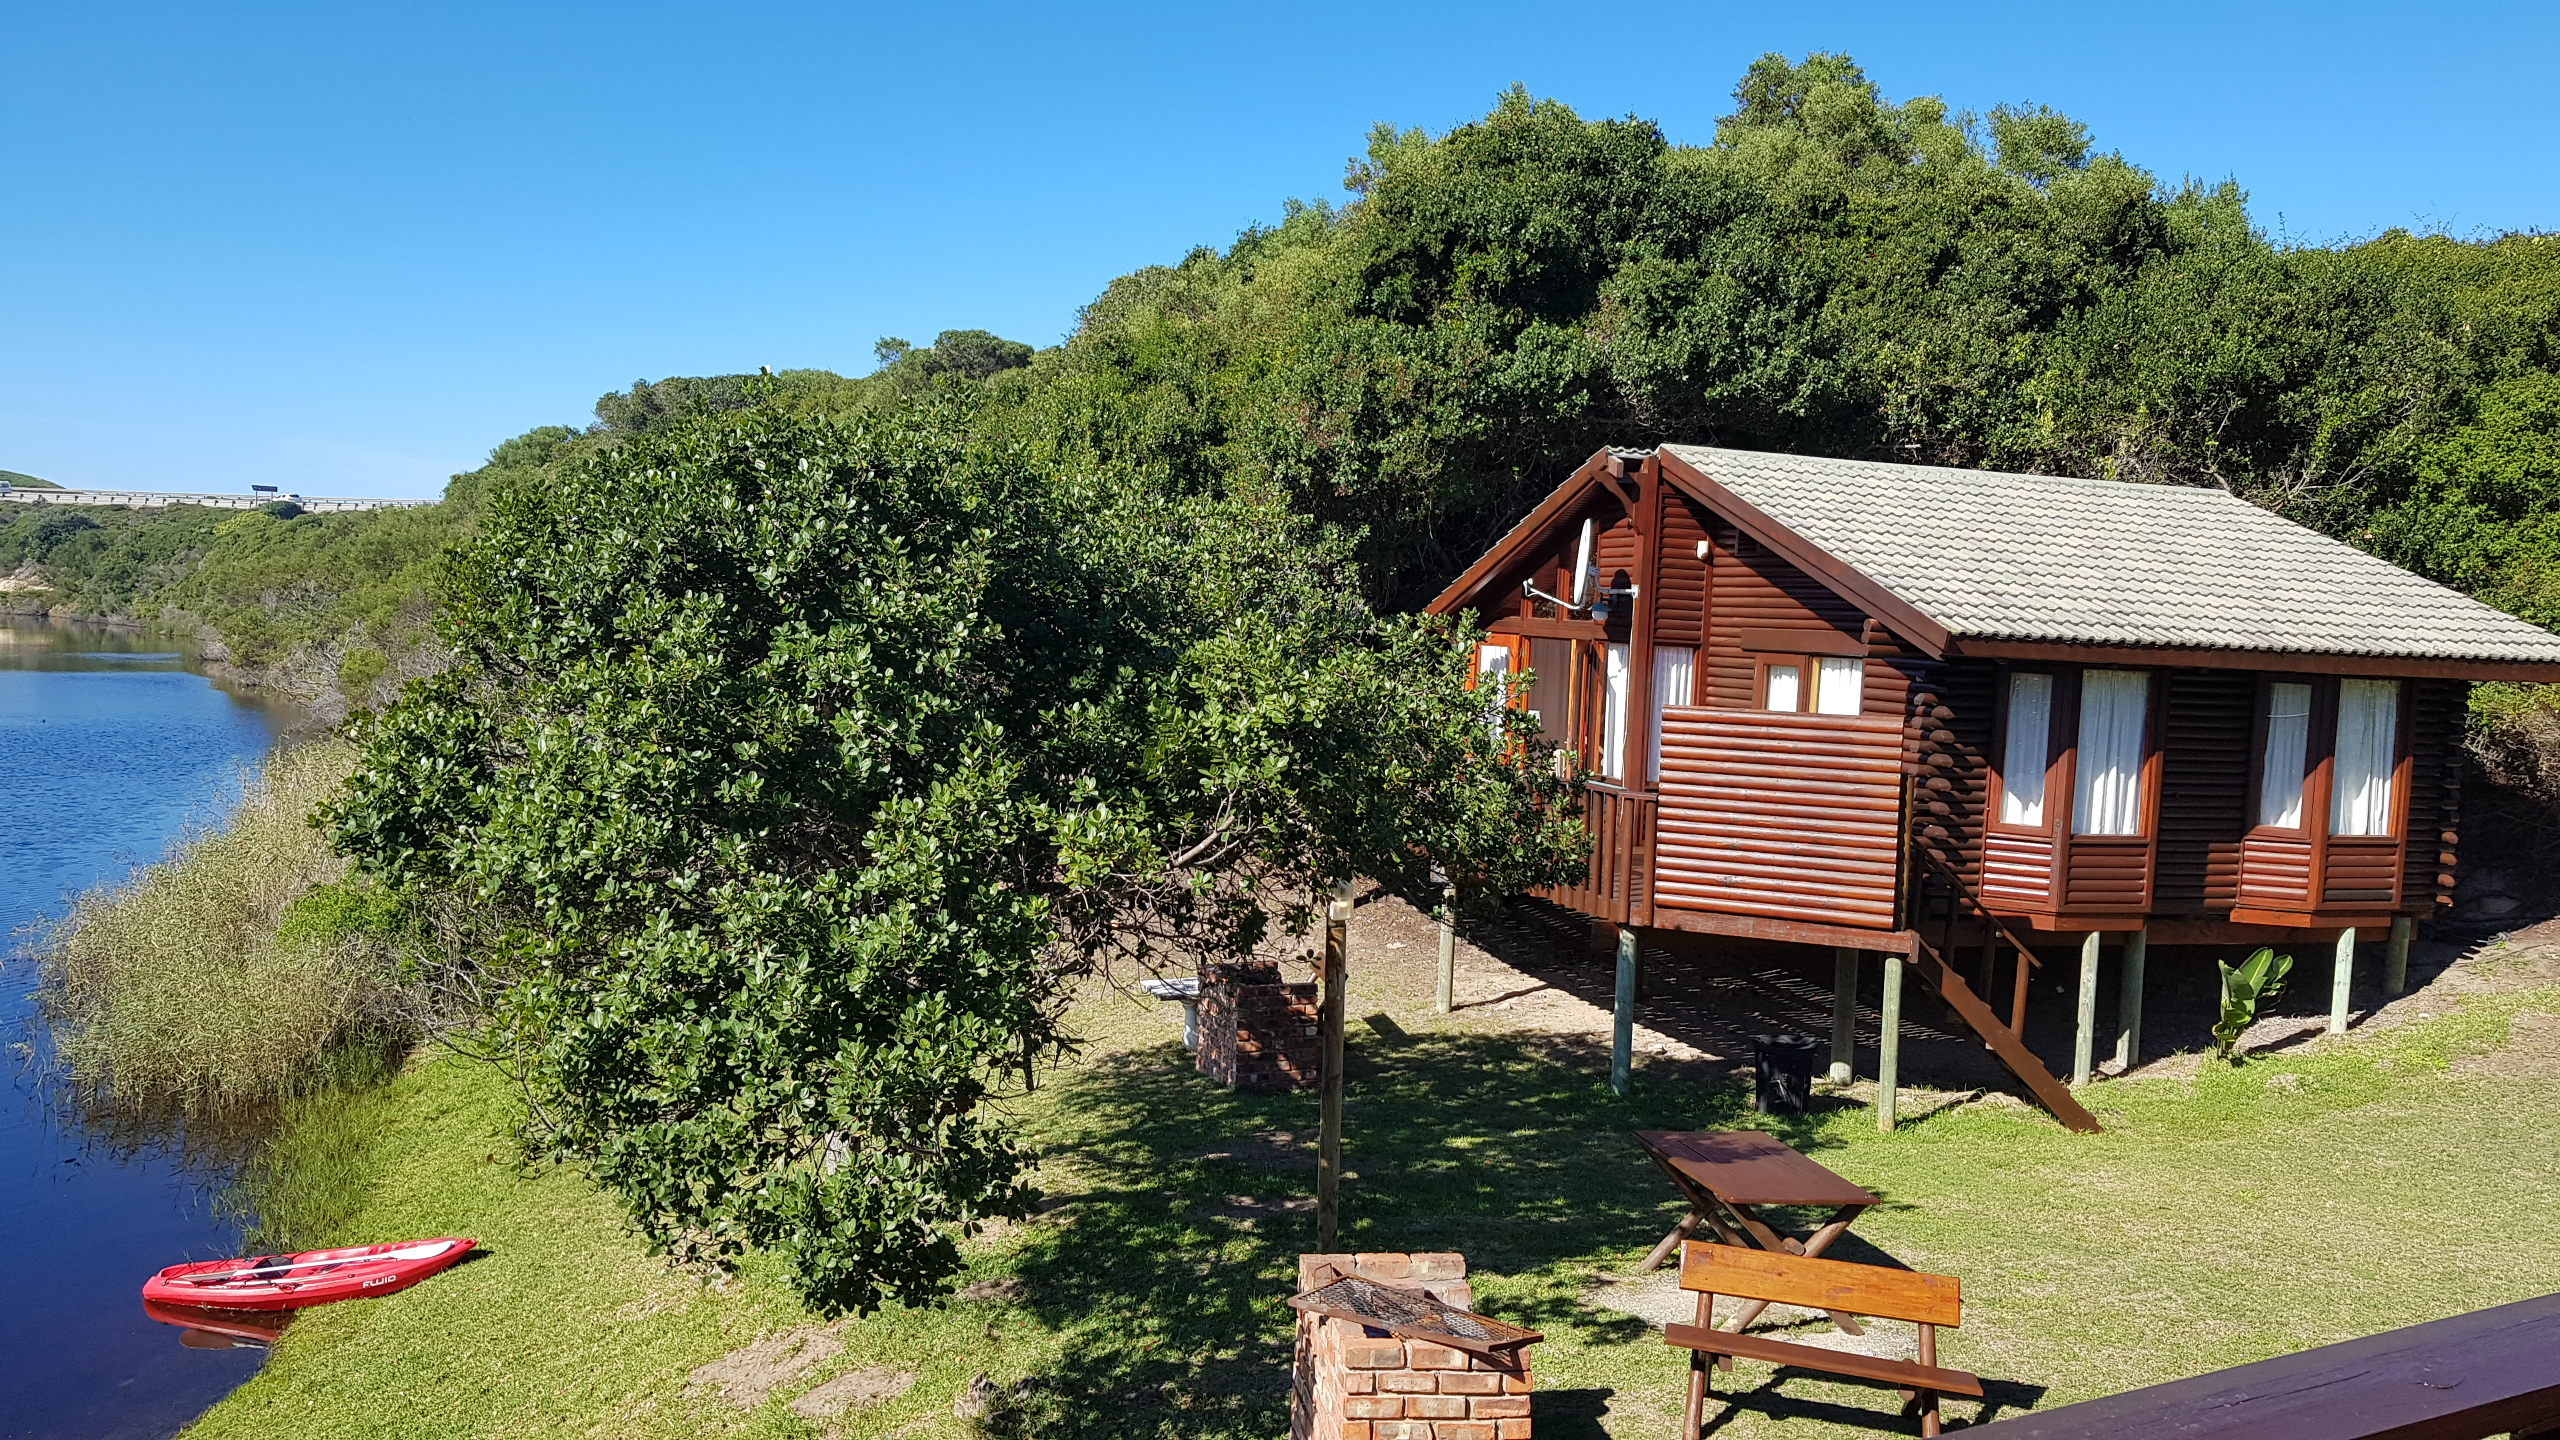 KingFisher_Chalet_No1a_PiratesCreekAccommodation